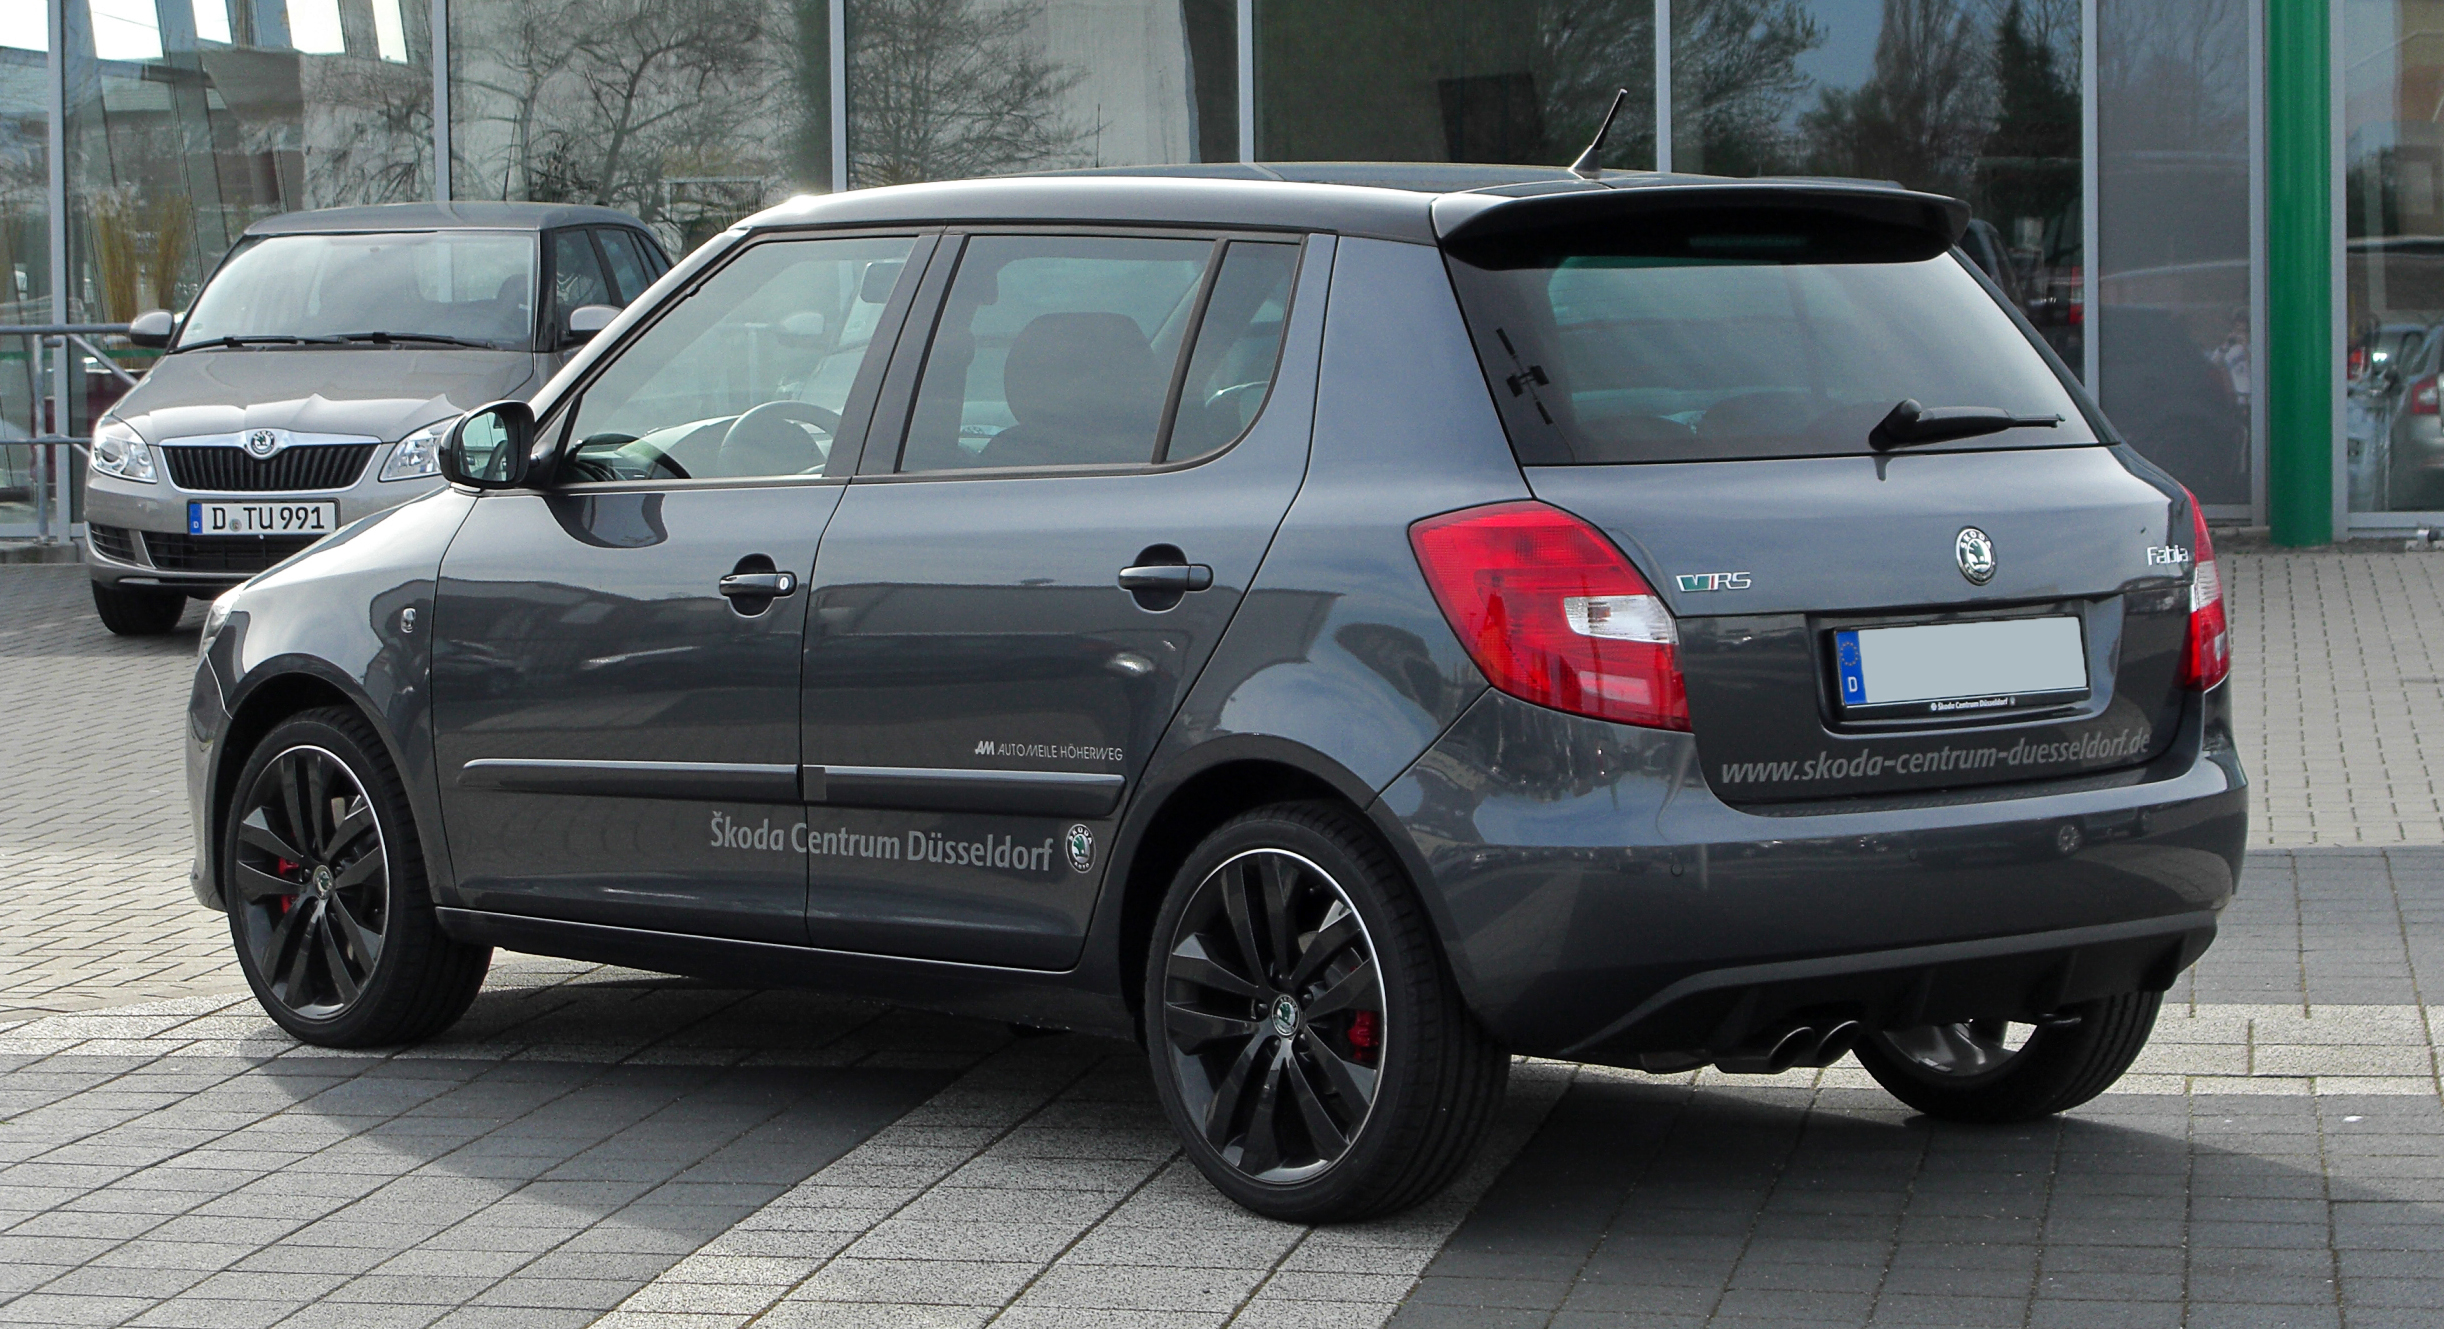 file skoda fabia 1 4 tsi dsg rs ii facelift heckansicht 1 2 april 2011 d. Black Bedroom Furniture Sets. Home Design Ideas